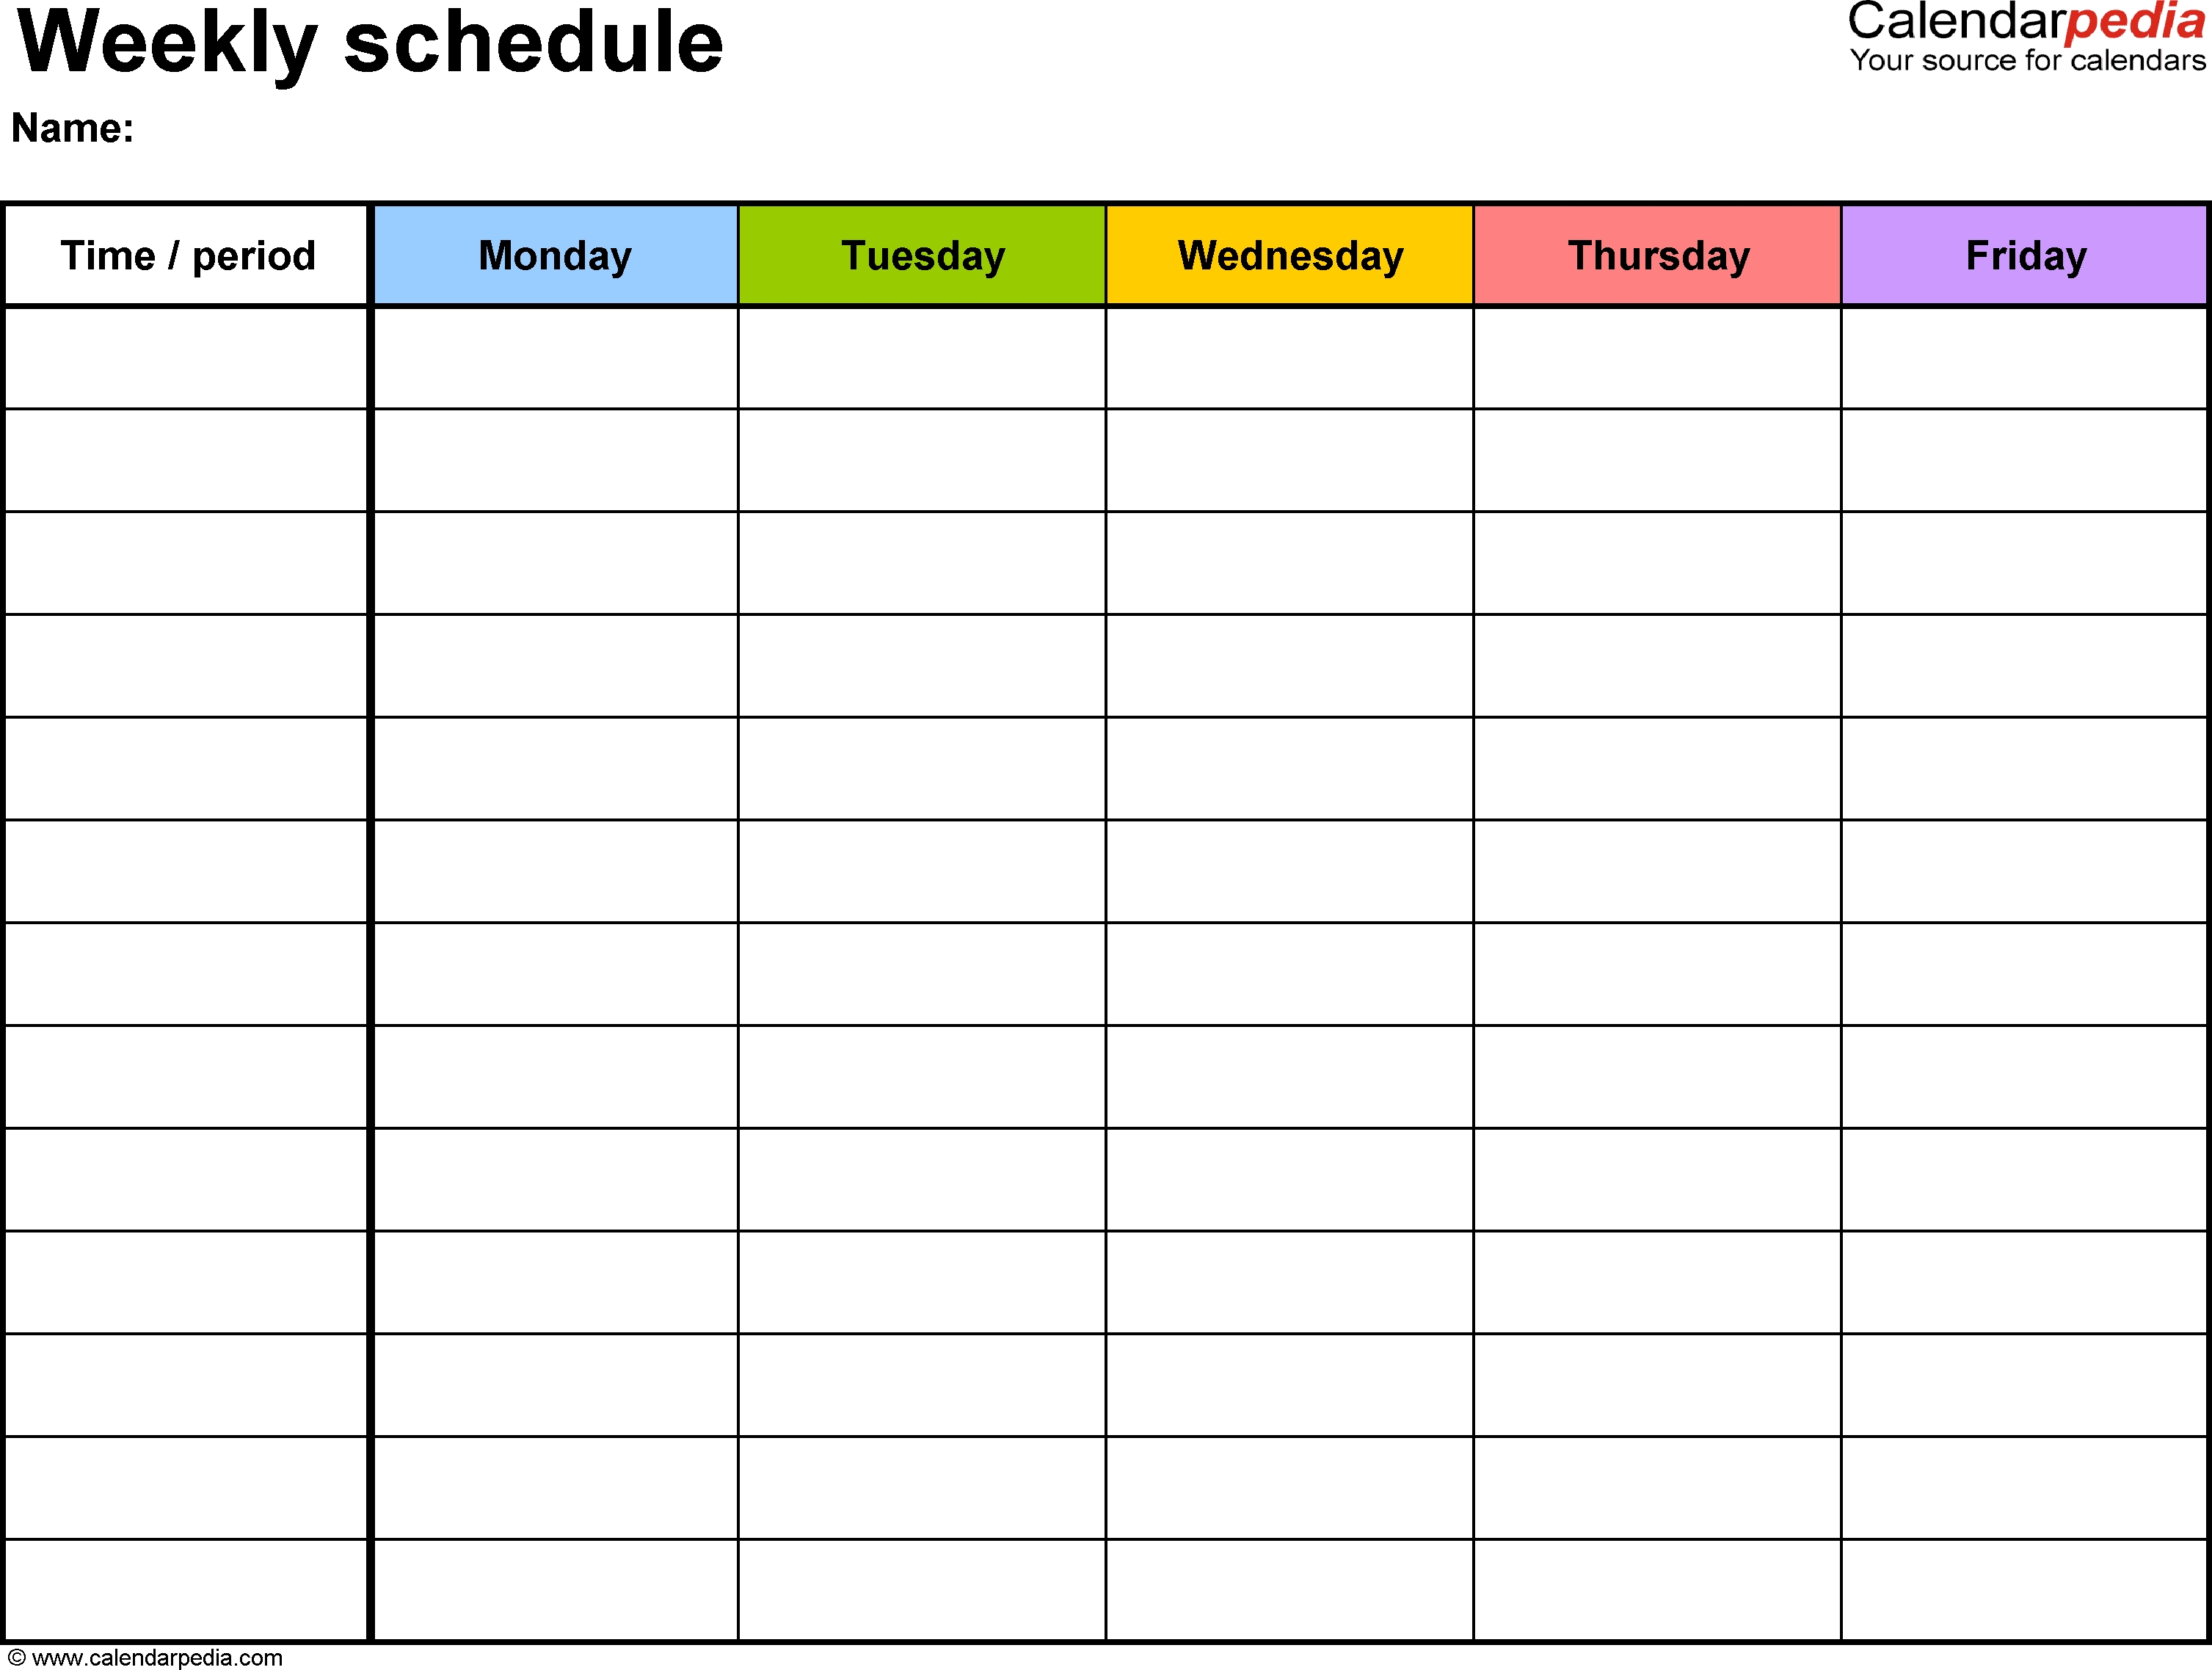 Free Weekly Schedule Templates For Word - 18 Templates in 5 Day Monthly Calendar Printable Free